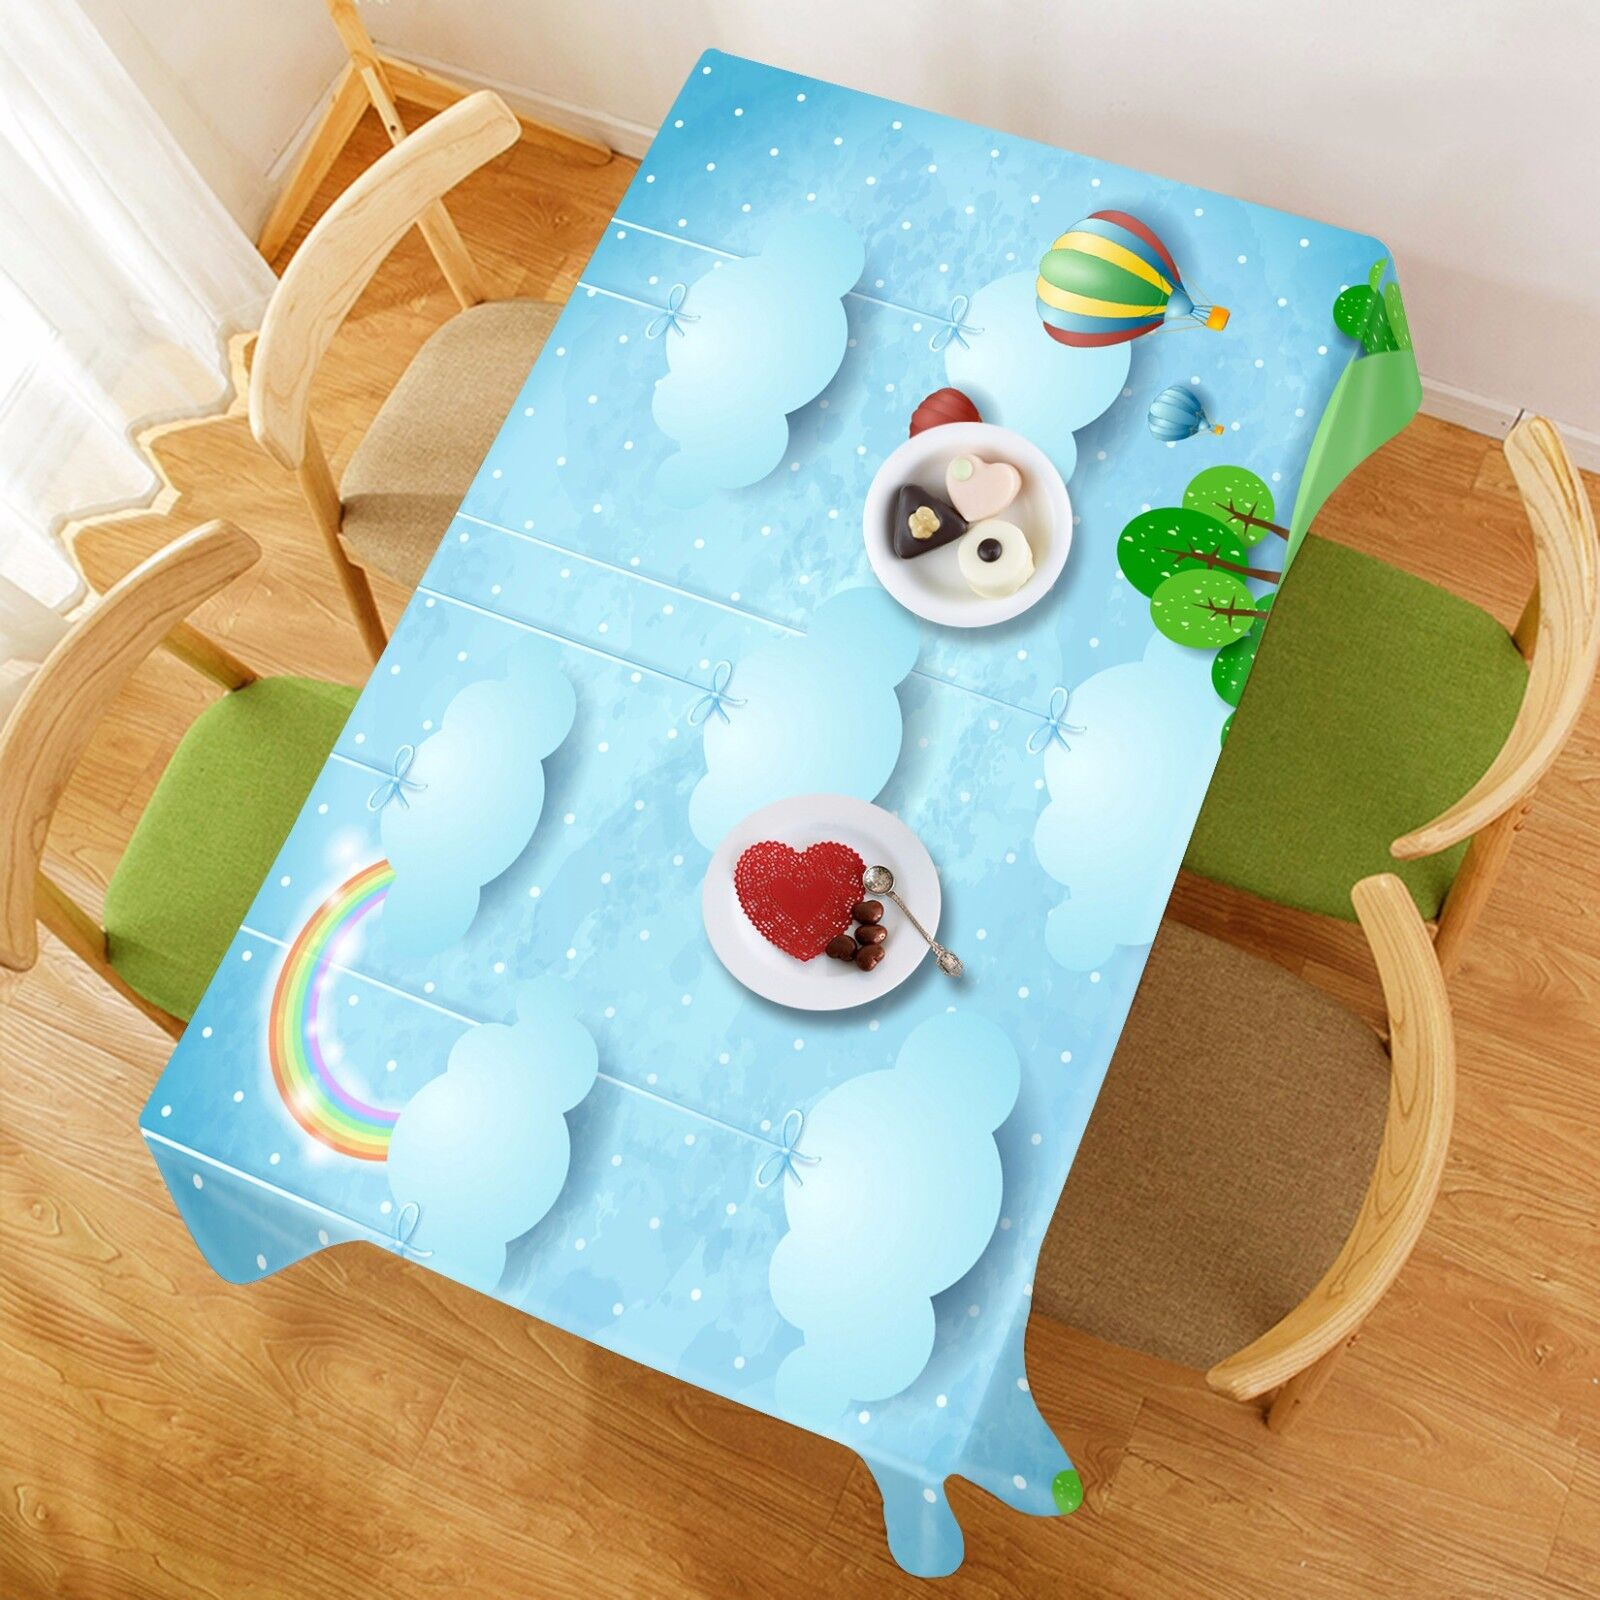 3D Clouds 978 Tablecloth Table Cover Cloth Birthday Party Event AJ WALLPAPER AU